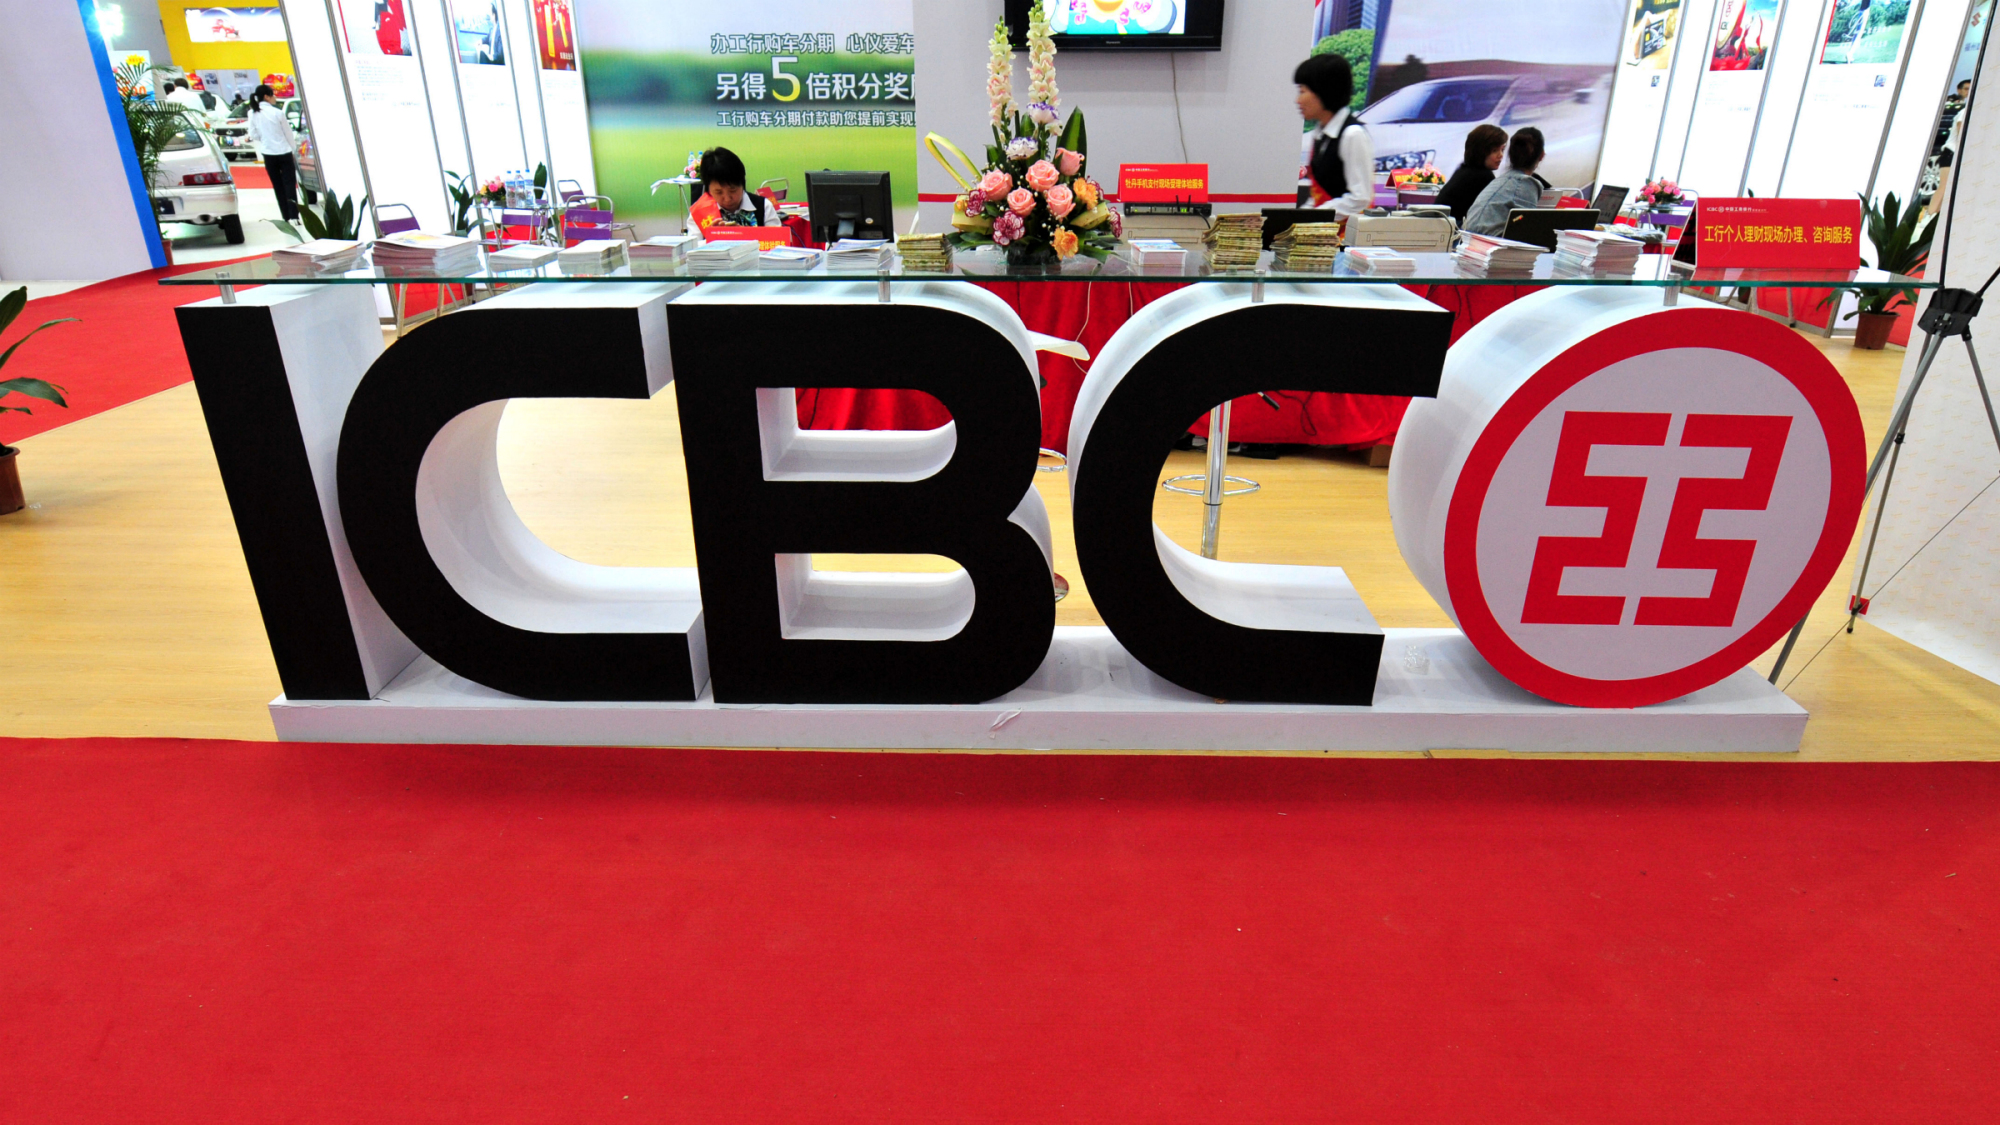 Industrial and Commercial Bank of China(ICBC)